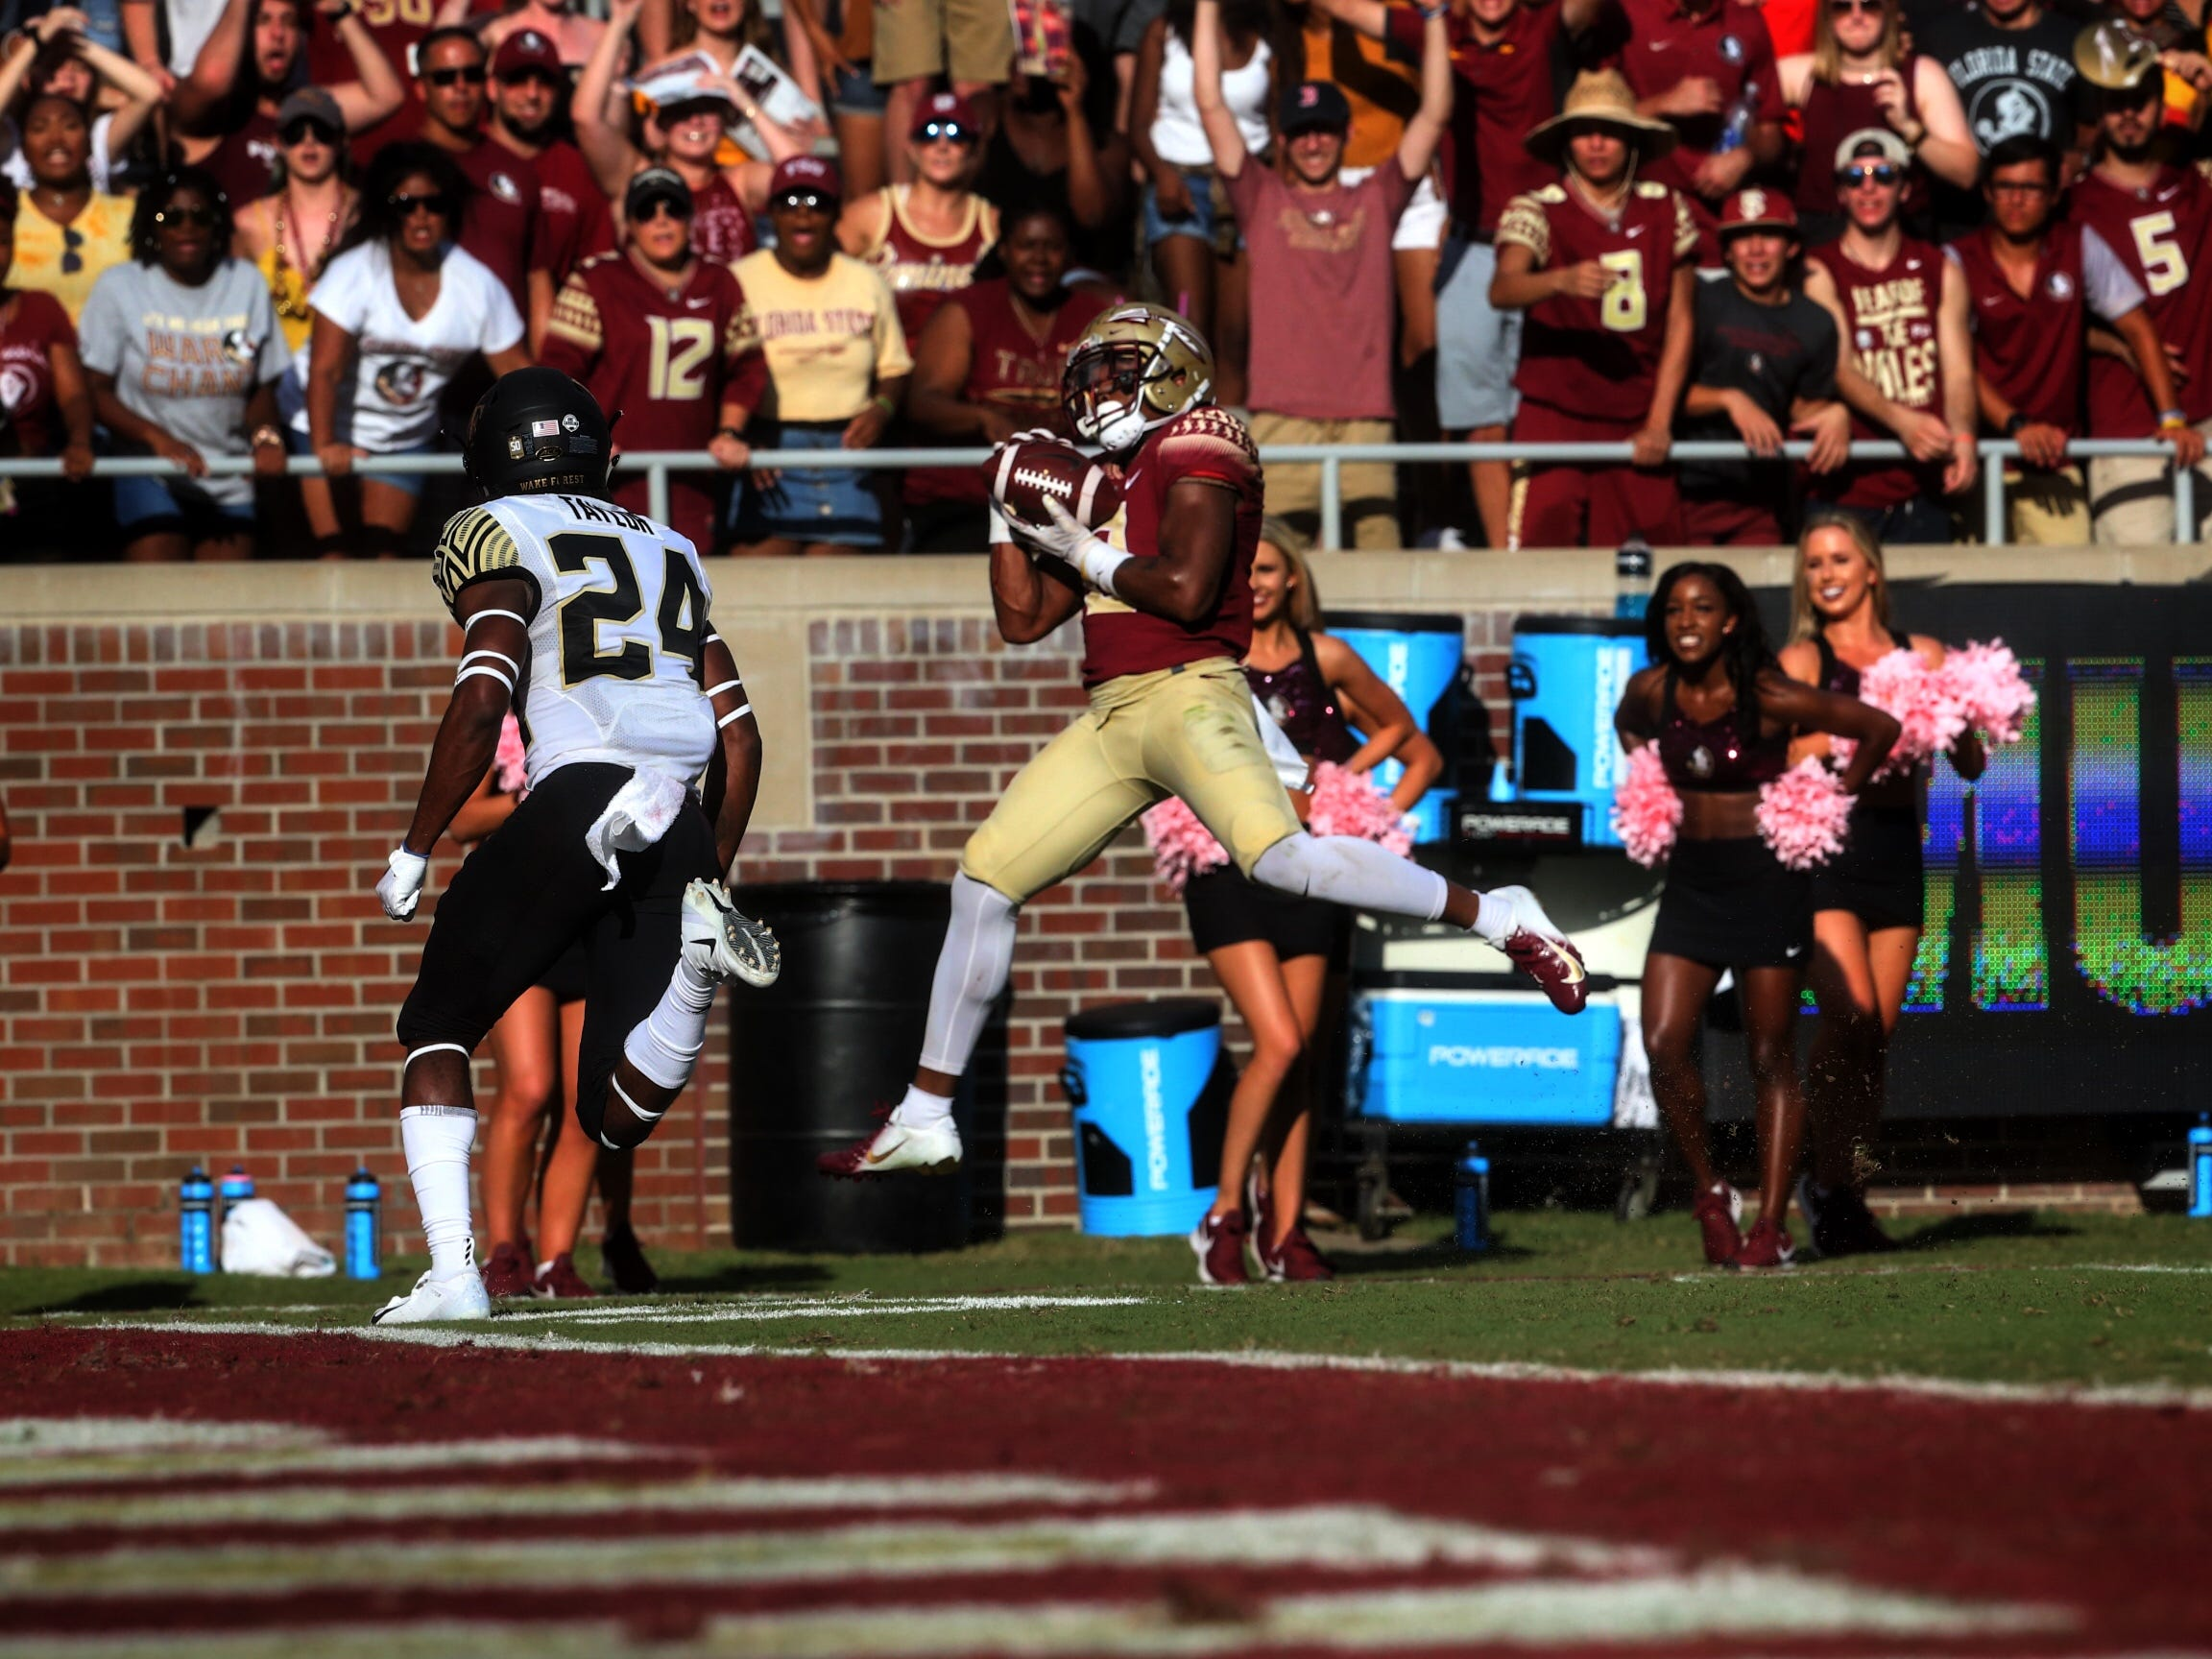 Florida State receiver Nyqwan Murray hauls in a 33-yard touchdown catch against Wake Forest during a game at Doak Campbell Stadium on Saturday, Oct. 20, 2018.